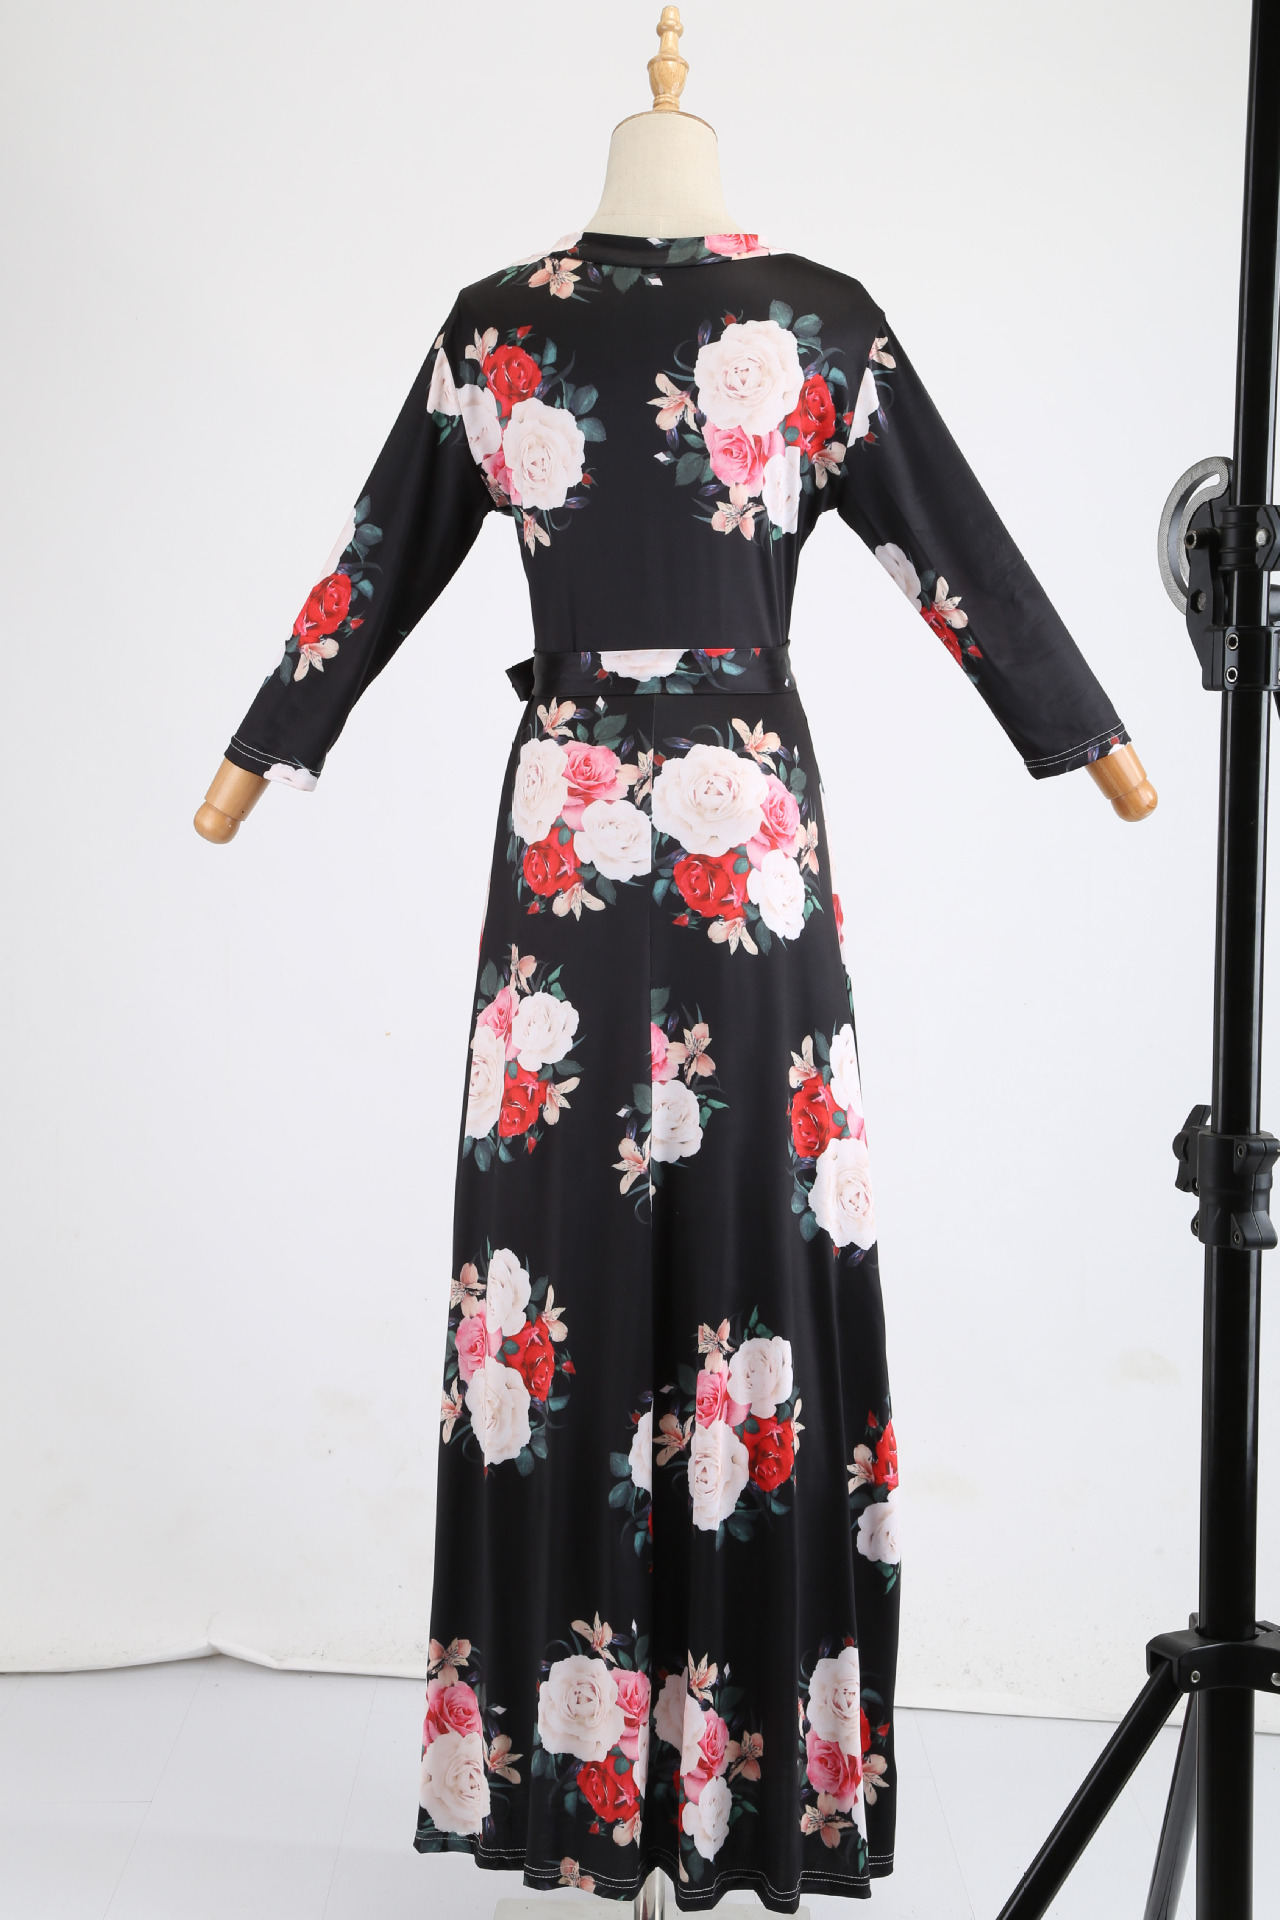 He07724d7c91649a6ab3990c3a902610b6 - Oufisun Spring Sexy Deep V Neck Women's Dress Bohemia Tunic Maxi Dresses Elegant Vintage Flowers Print Dress Vestidos Plus Size